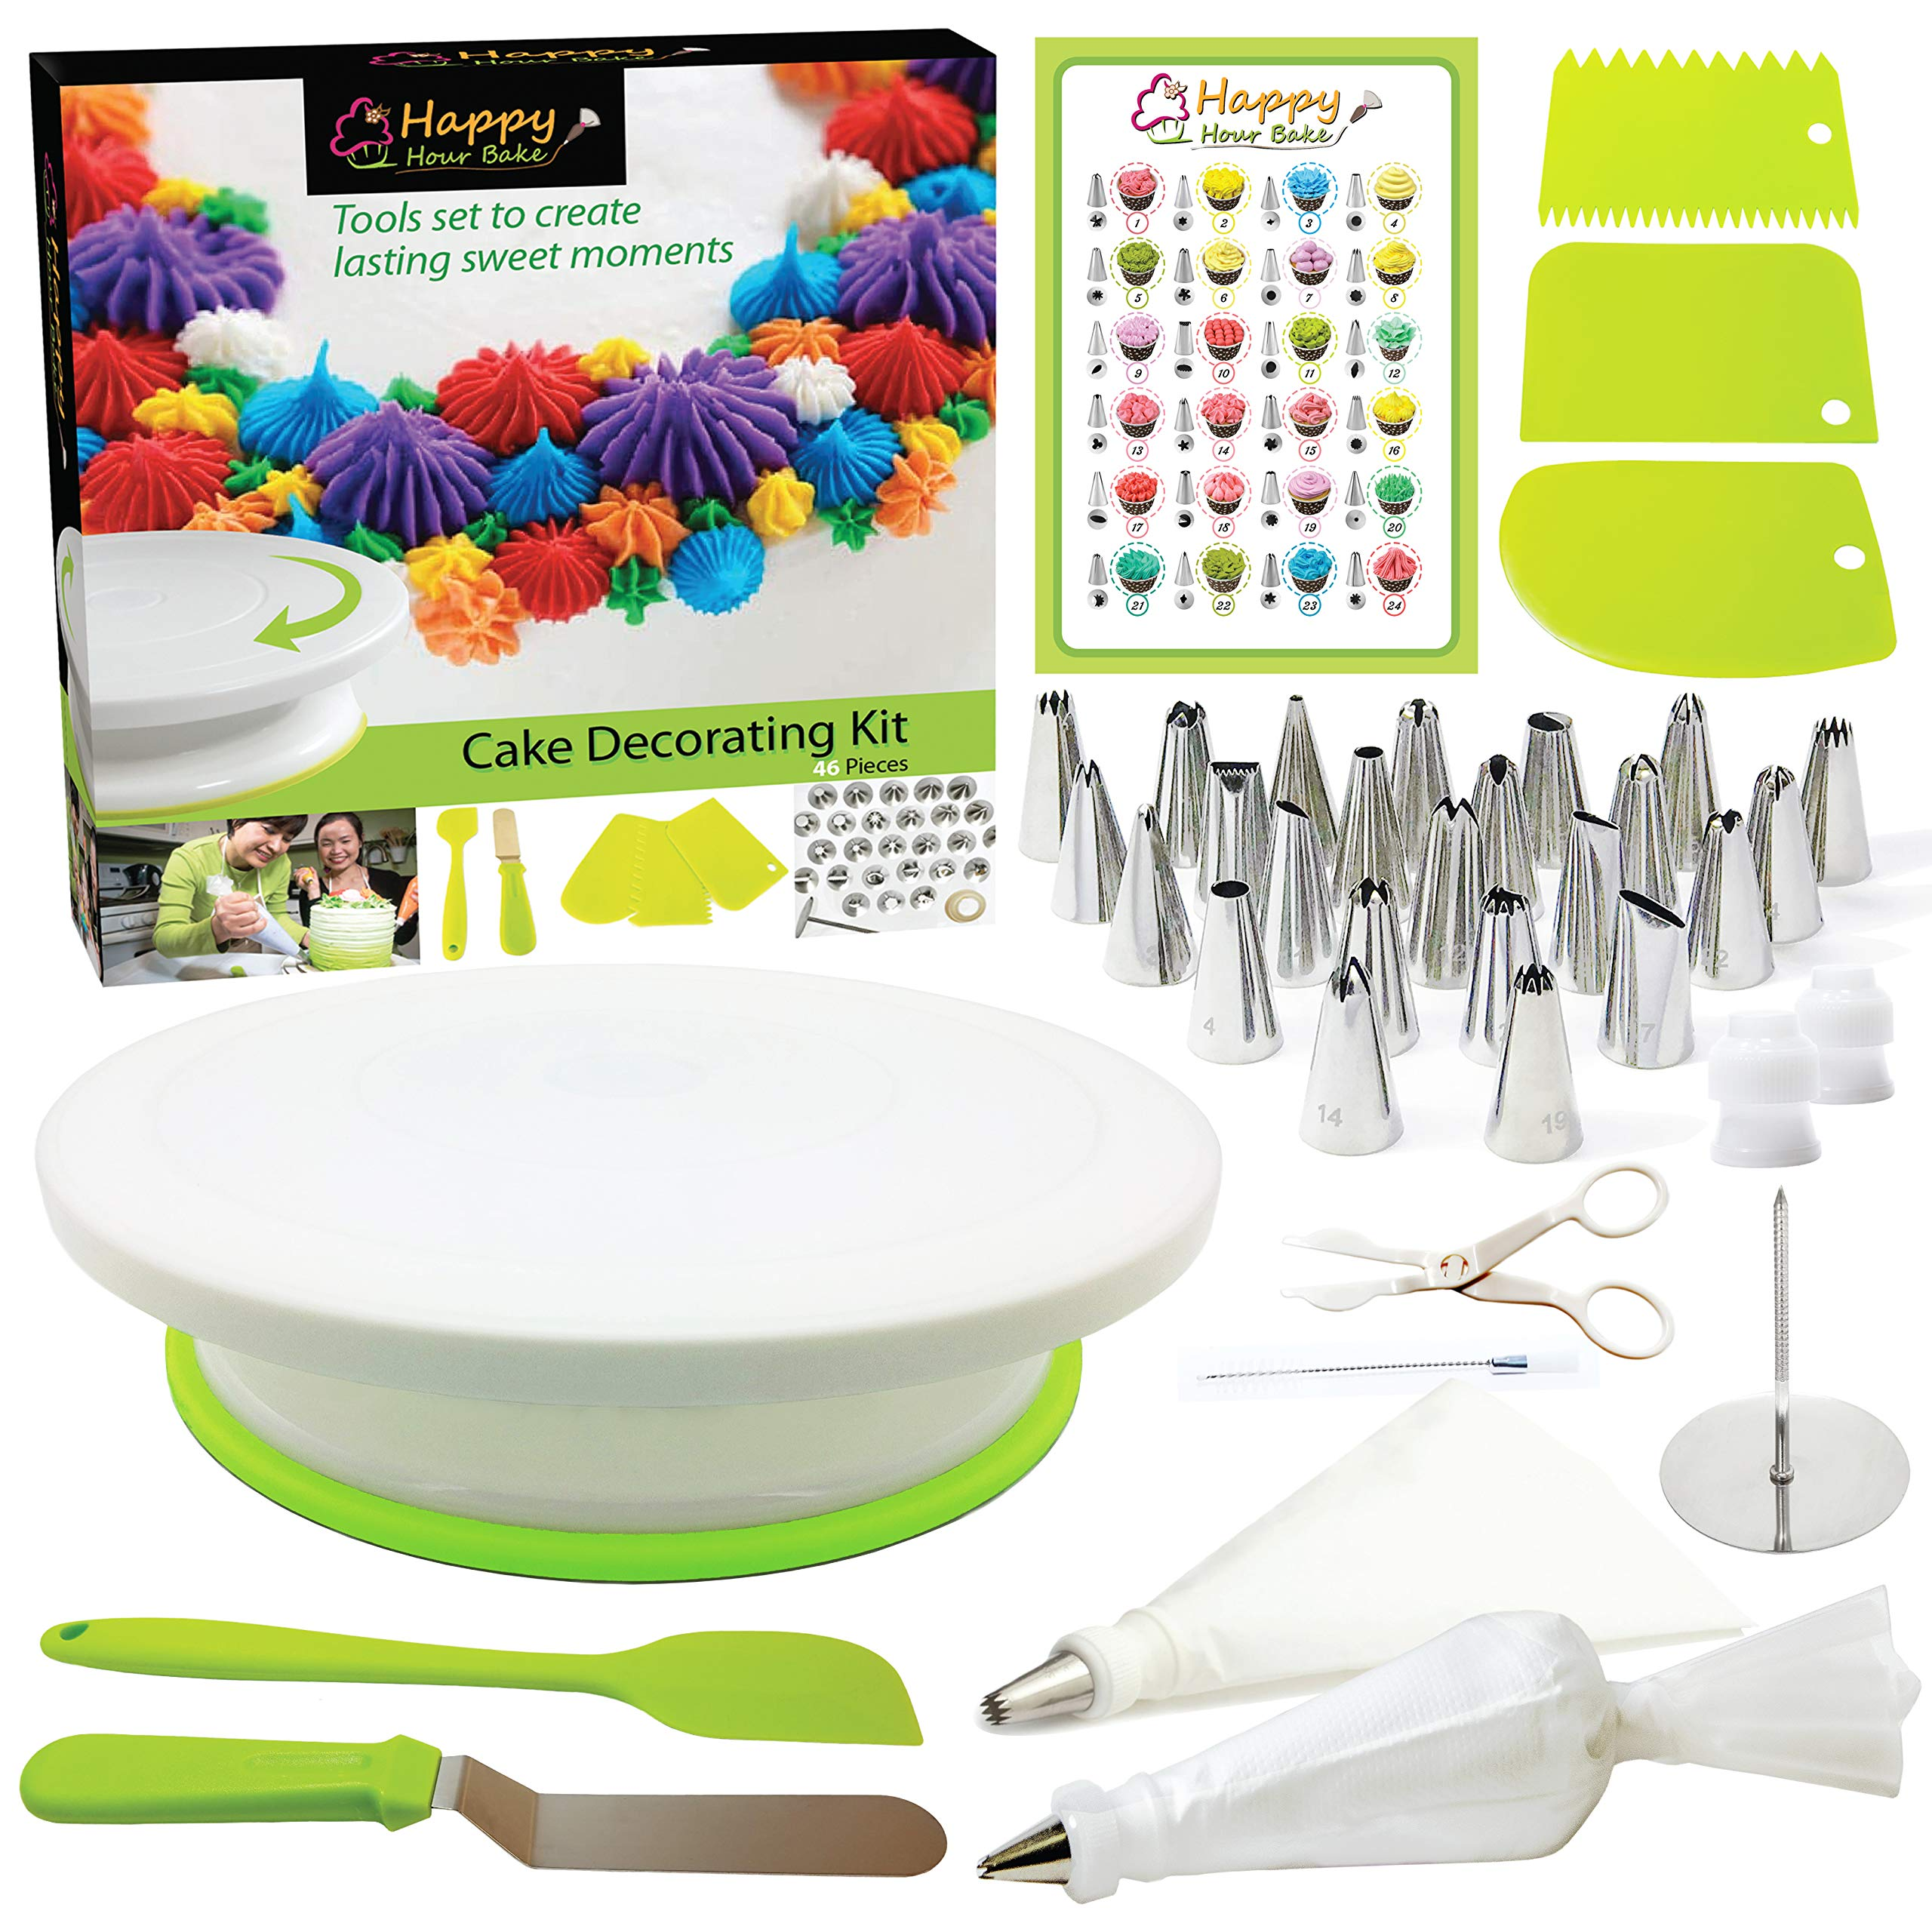 Happy Hour Bake 46pcs Beginner Cake Decorating Kit Baking Supplies with Rotating Cake Stand - Baking Kits for Adults or Kids- Cupcake Decorating Kit with Icing Bags and Tips- Cake Decorating Supplies by Happy Hour Bake